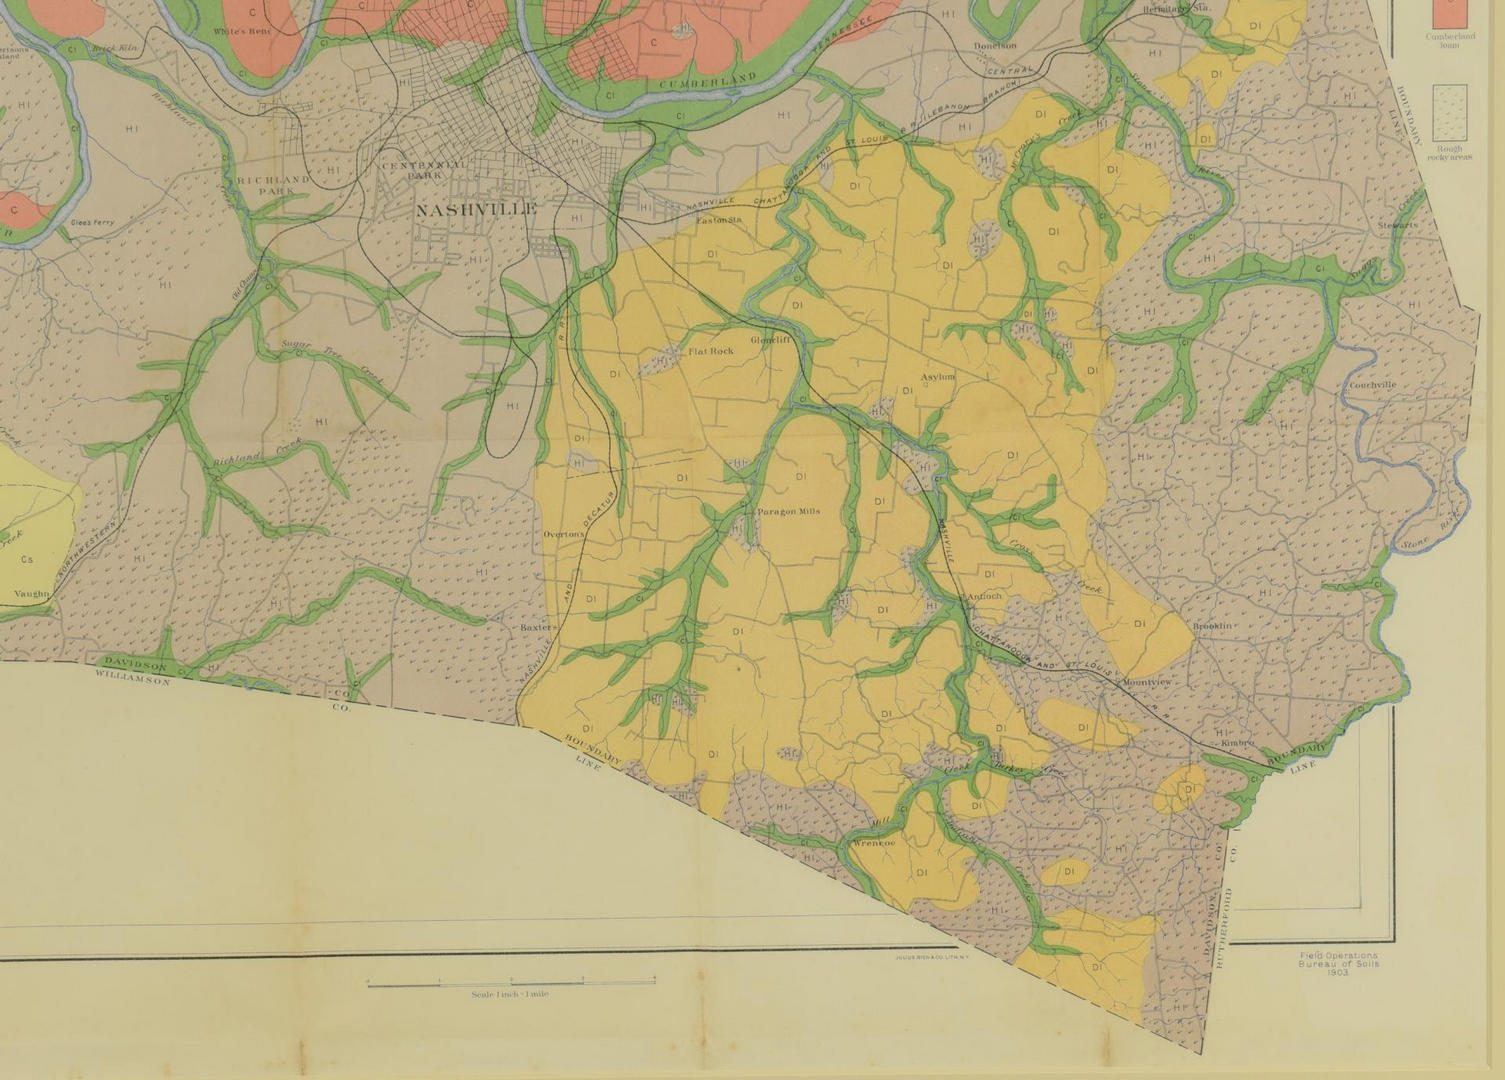 Lot 93: 1903 Geological Map, Davidson County